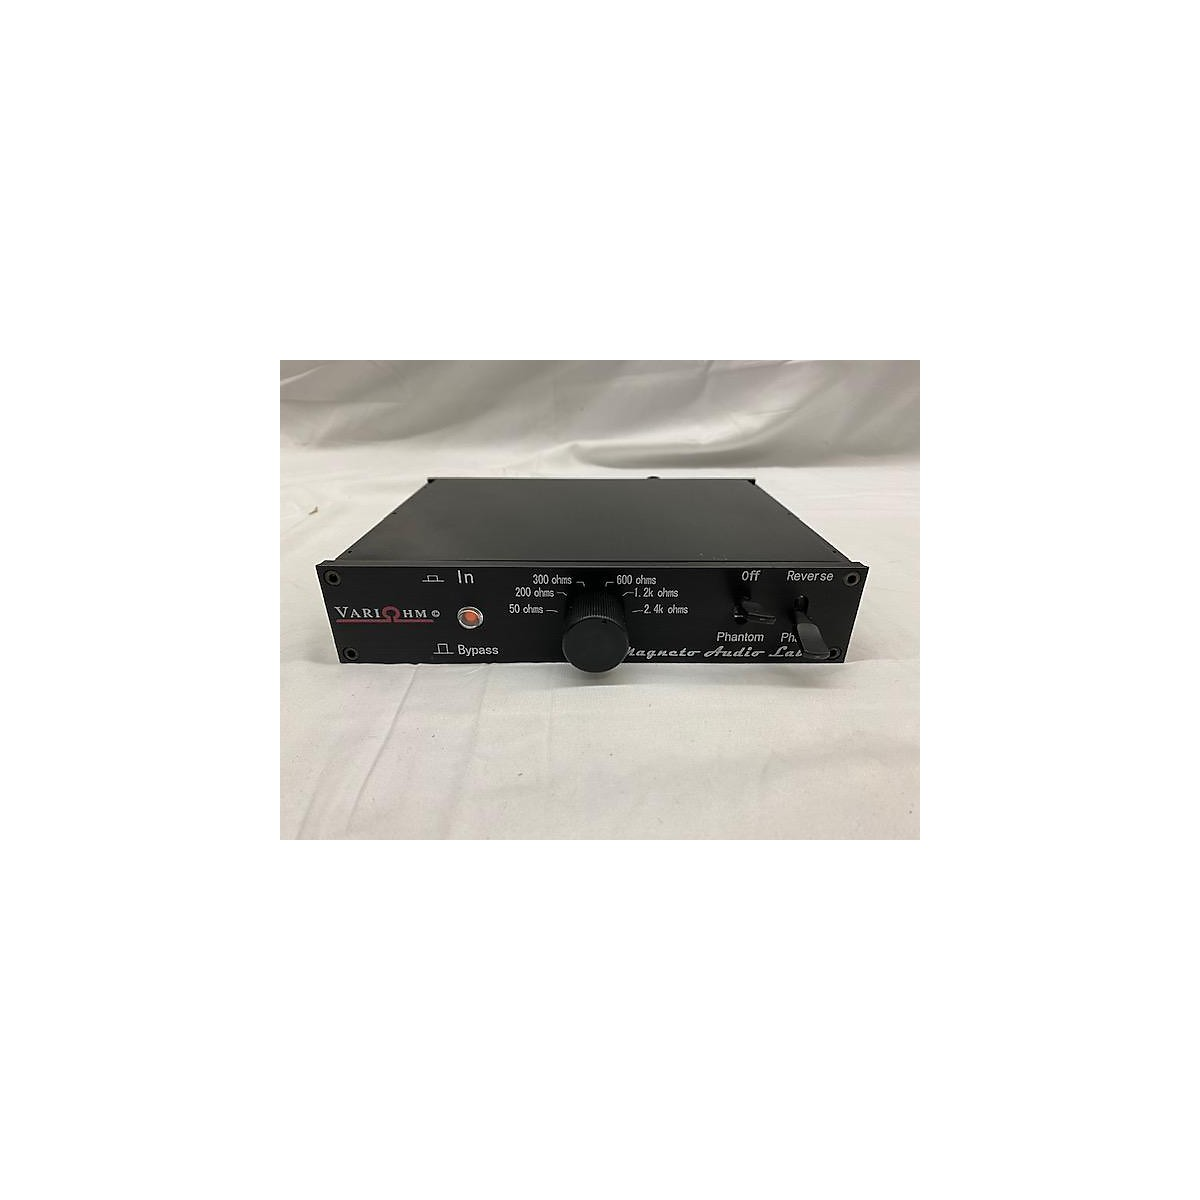 In Store Used Used MAGNETO AUDIO LABS VARIOHM IMPEDANCE CONTROL DEVICE Microphone Preamp